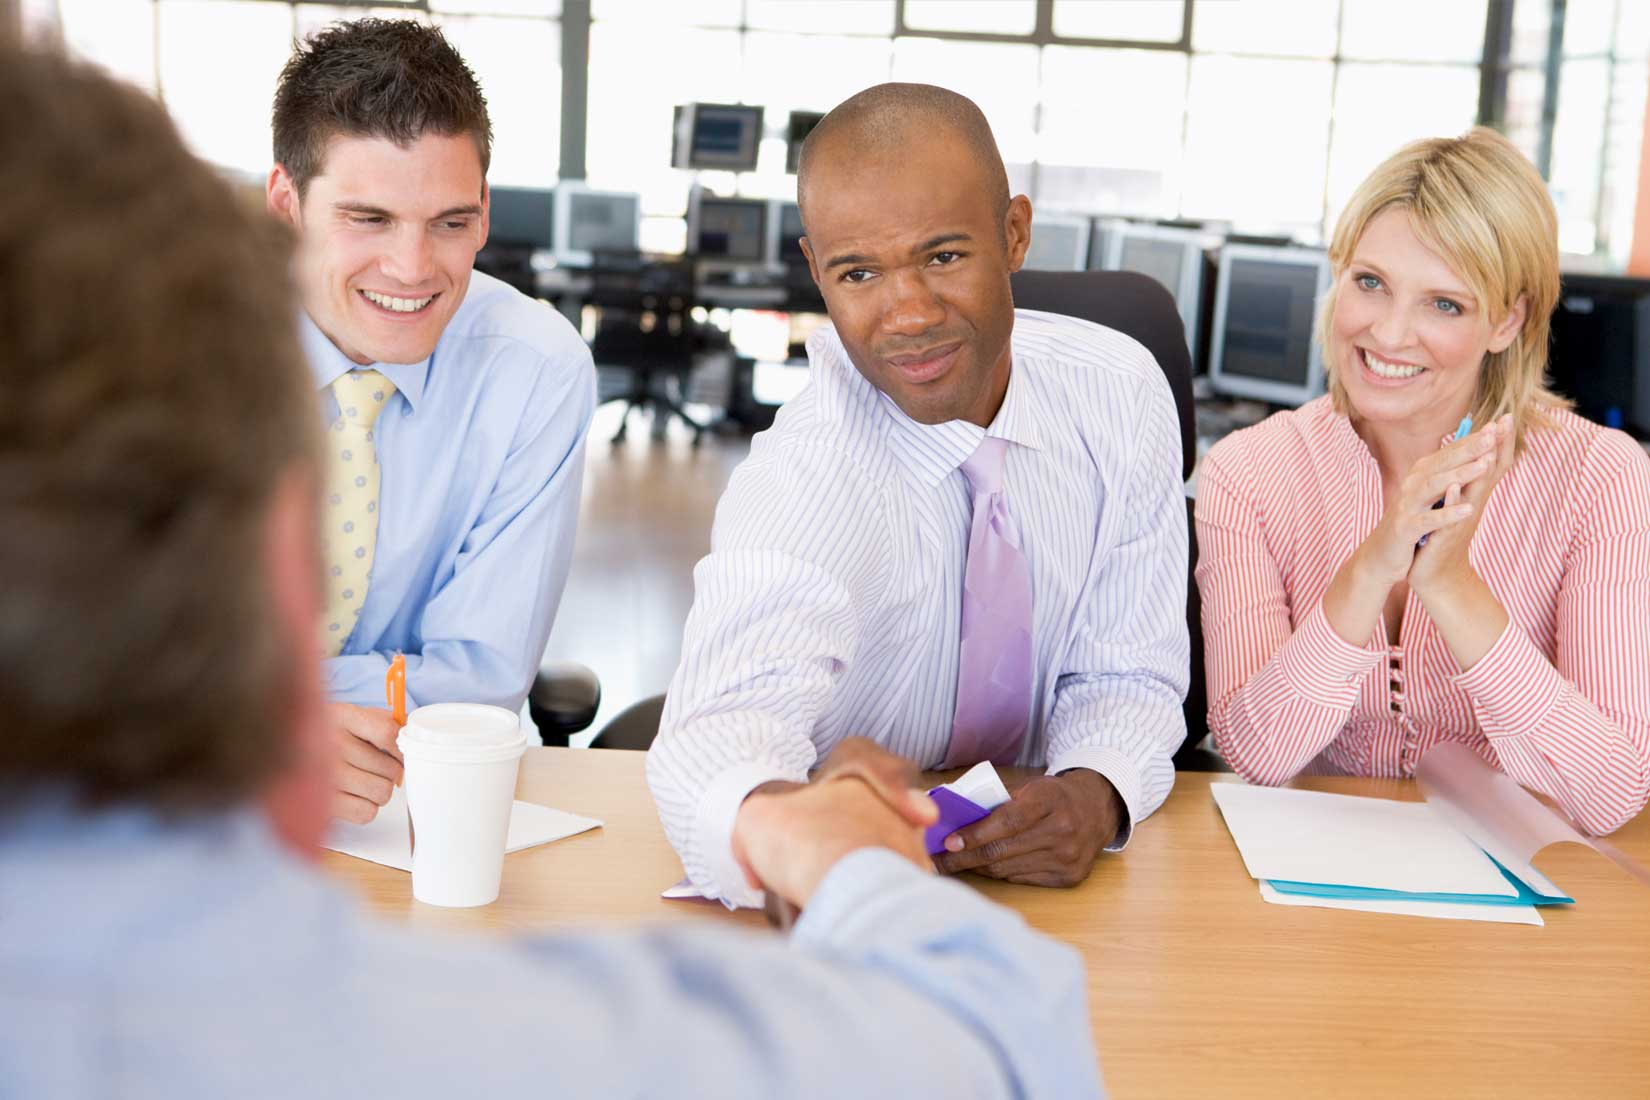 HR recruiting meeting, 2 people shaking hands and smiling